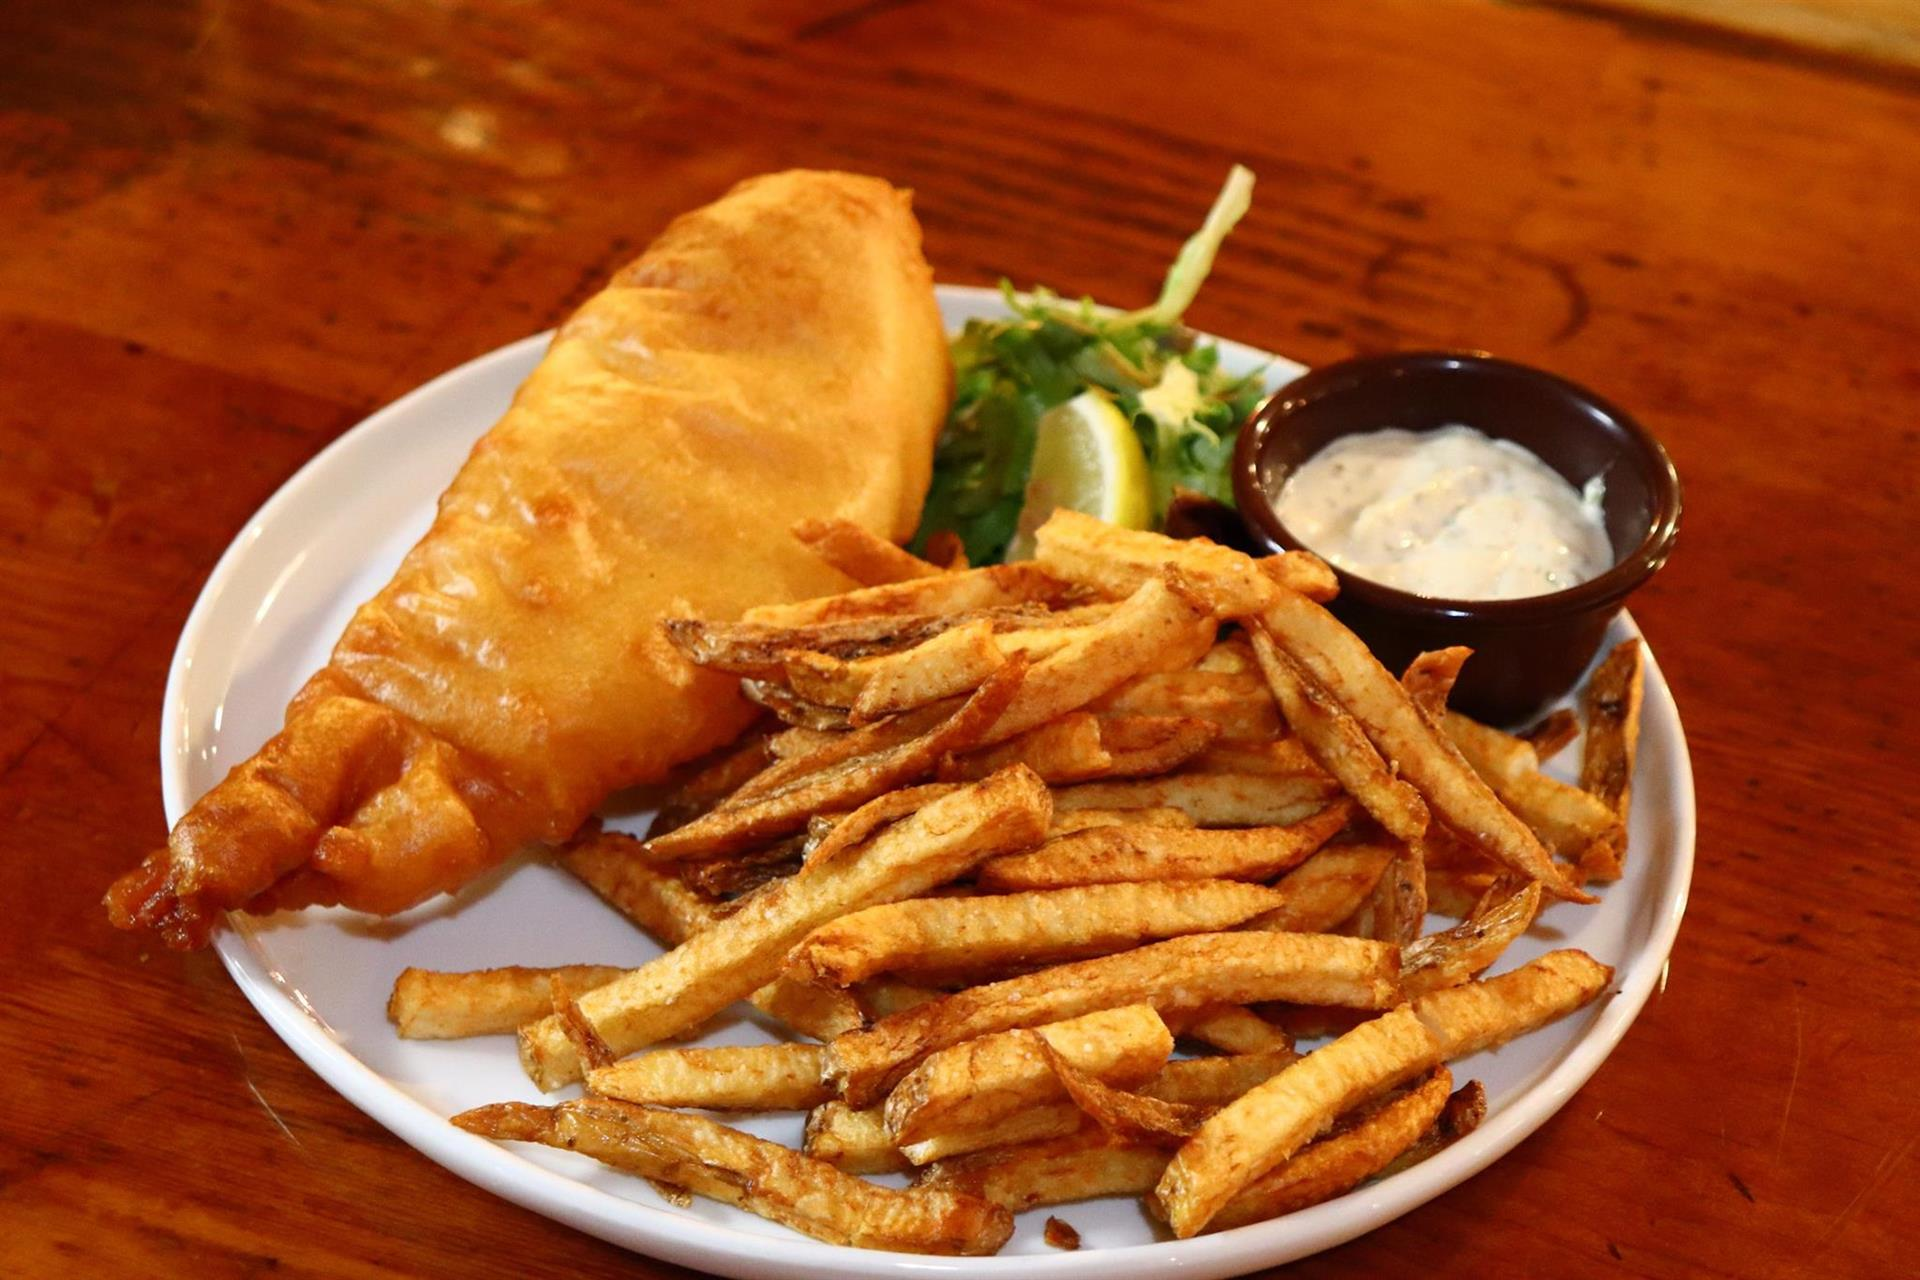 fish and chips on a plate with tartar sauce on the side.